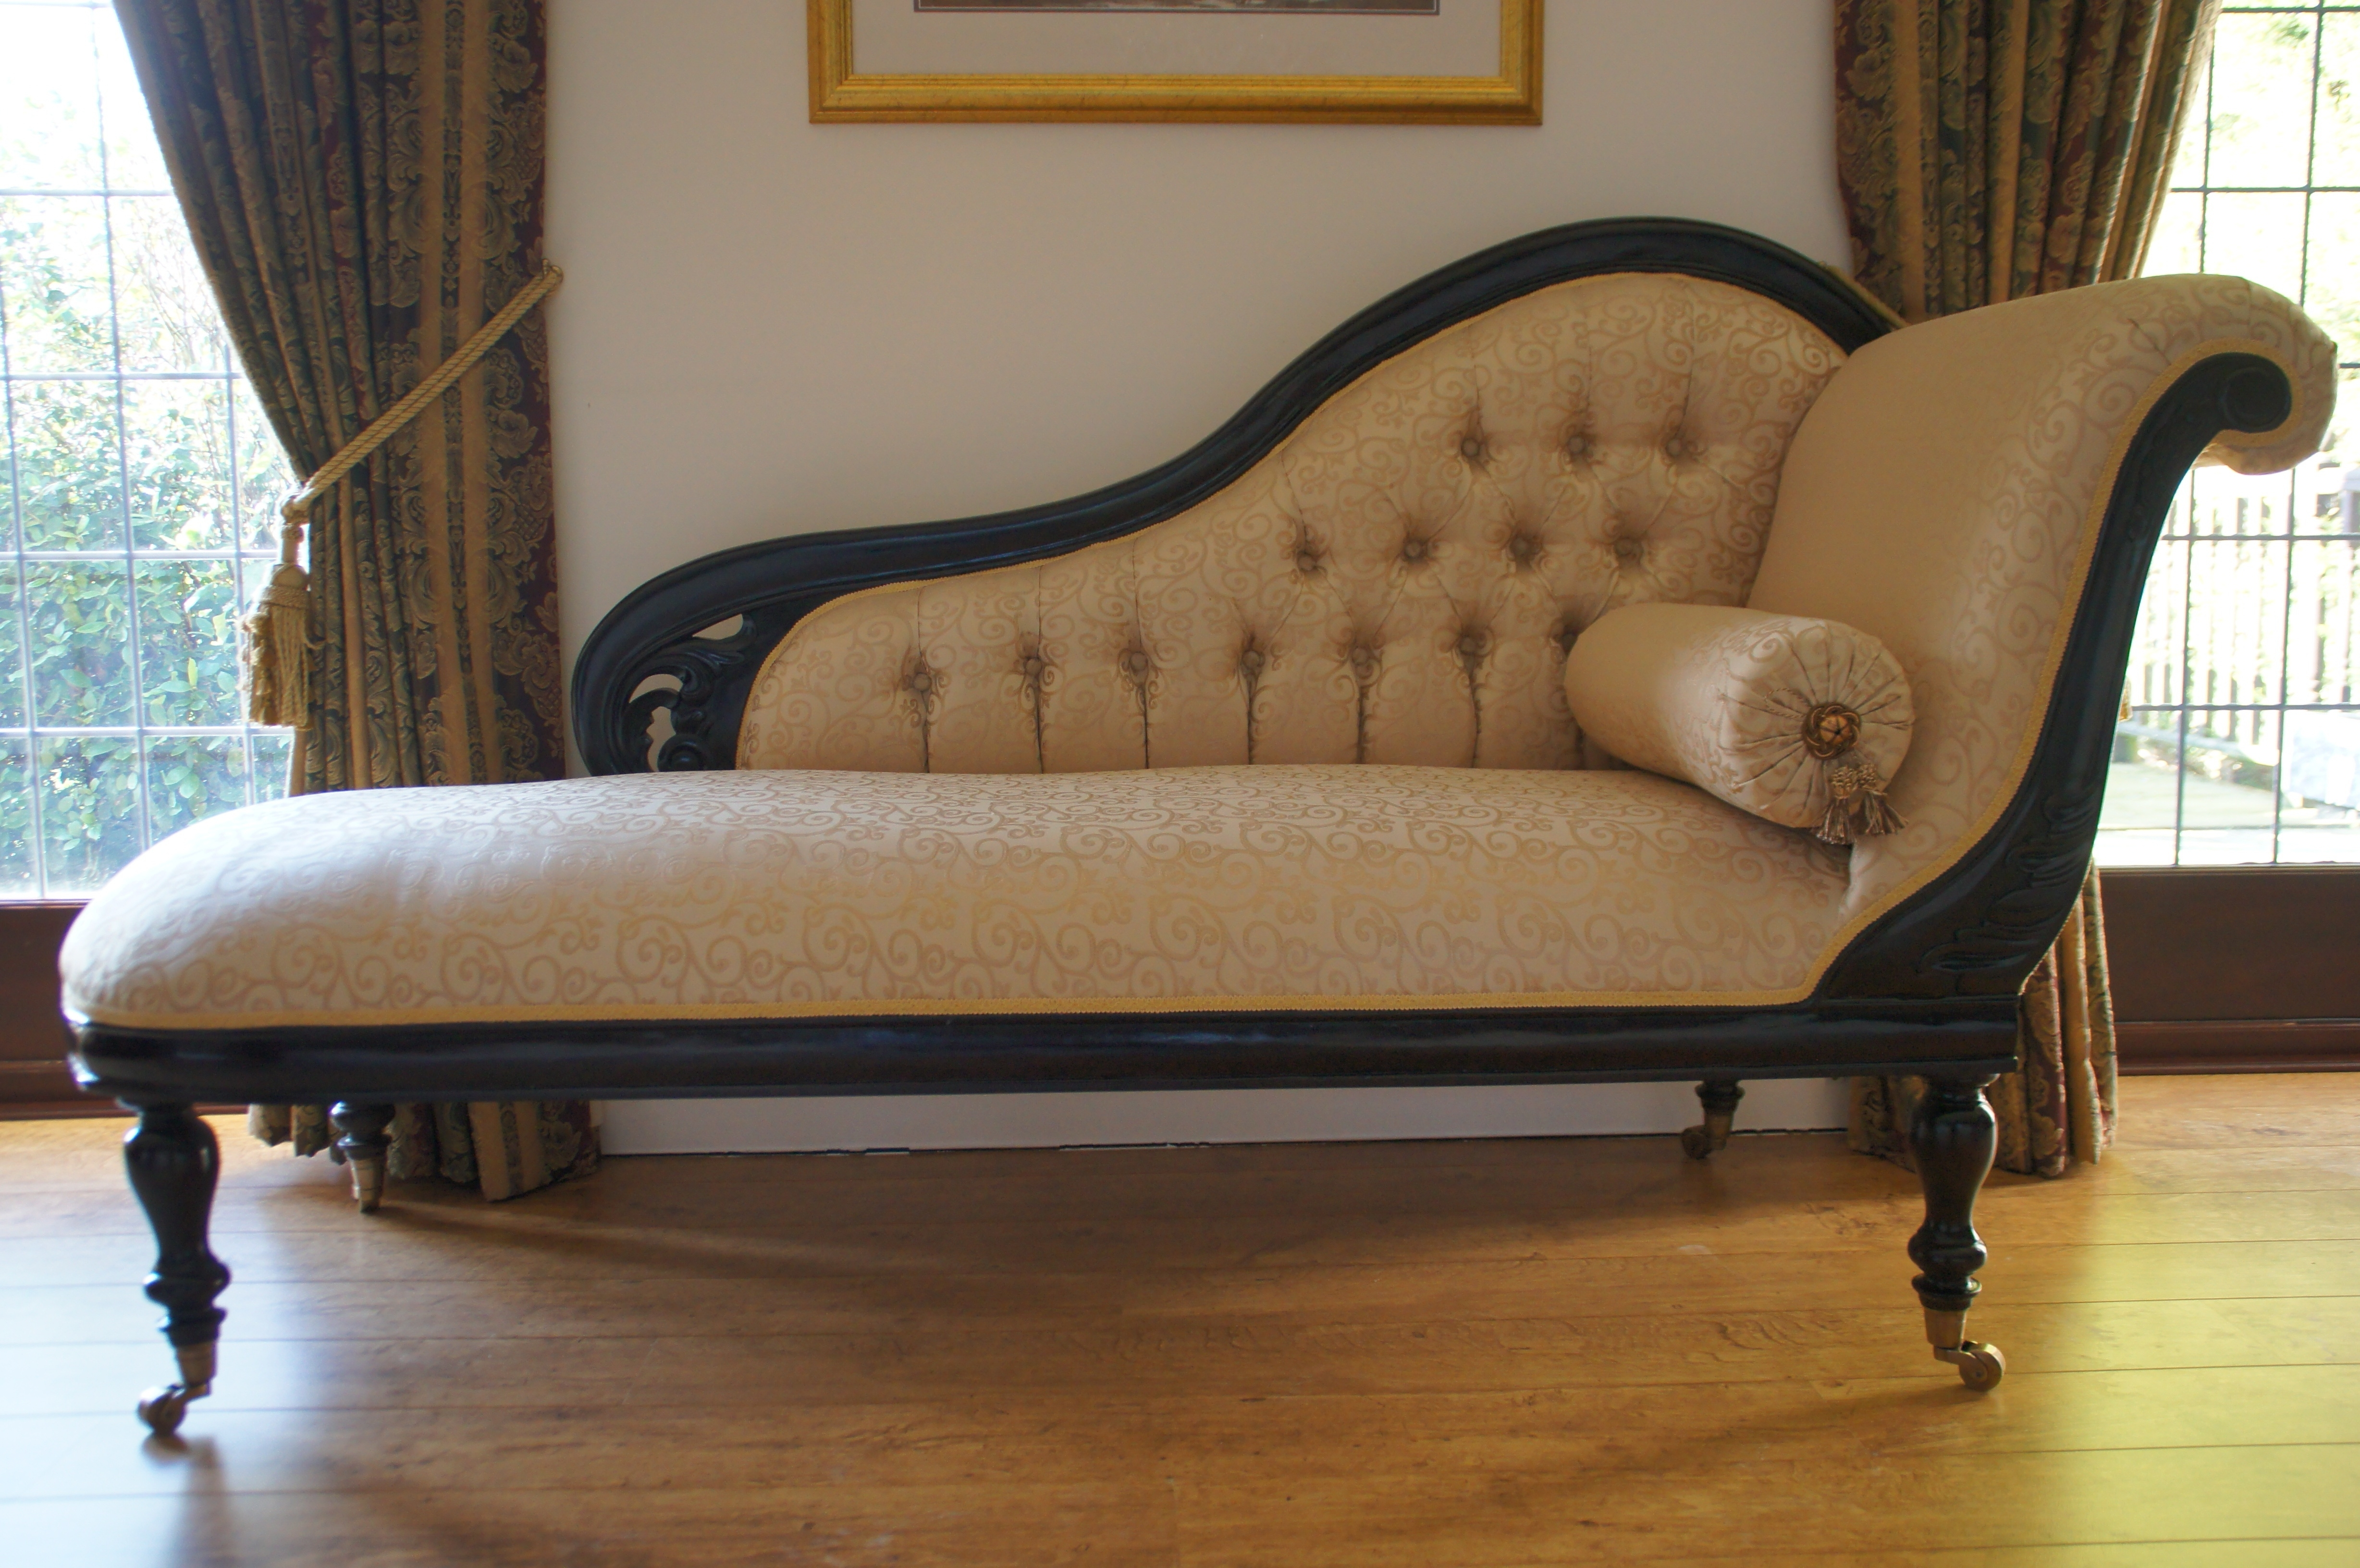 Fashionable Vintage White Leather Victorian Chaise Lounge Sofa With Black In Victorian Chaise Lounge Chairs (View 10 of 15)